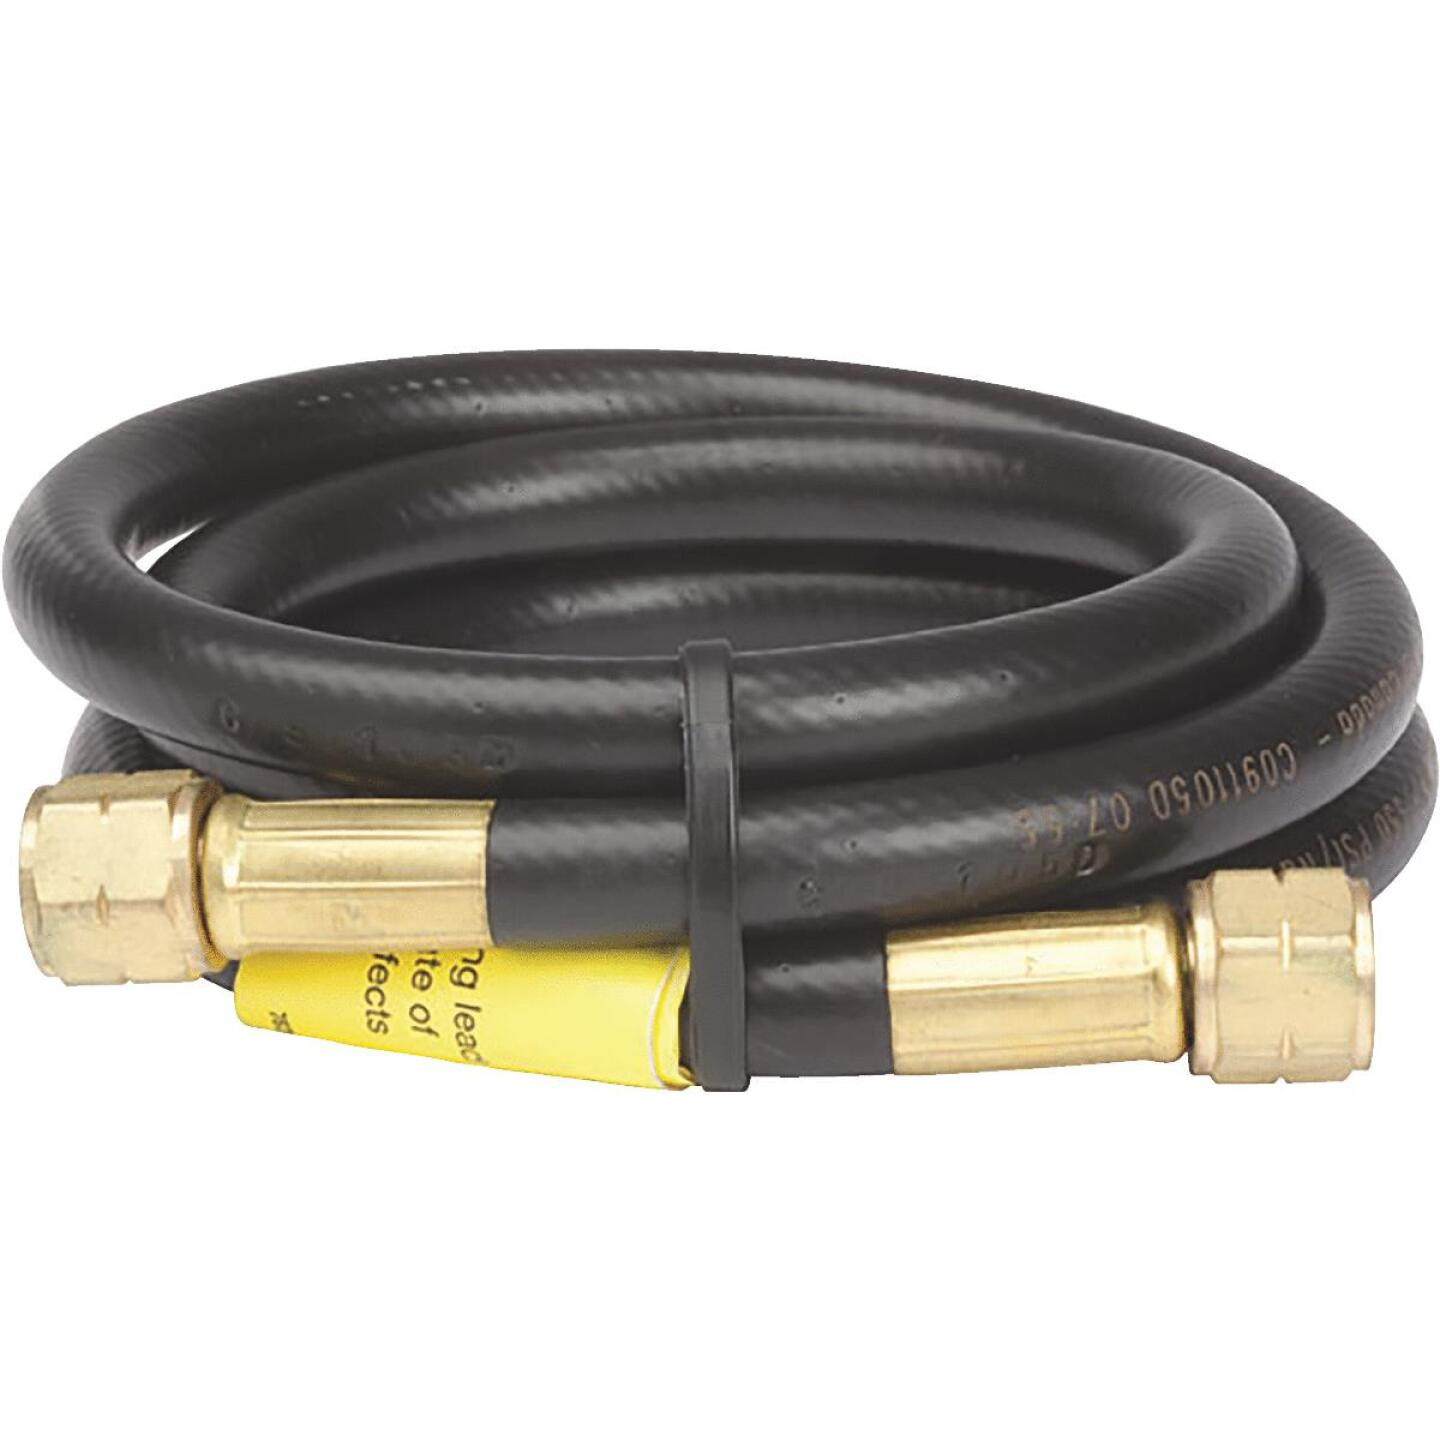 MR. HEATER 5 Ft. x x9/16 In. FPT x 9/16 In. FPT LP Hose Assembly Image 1